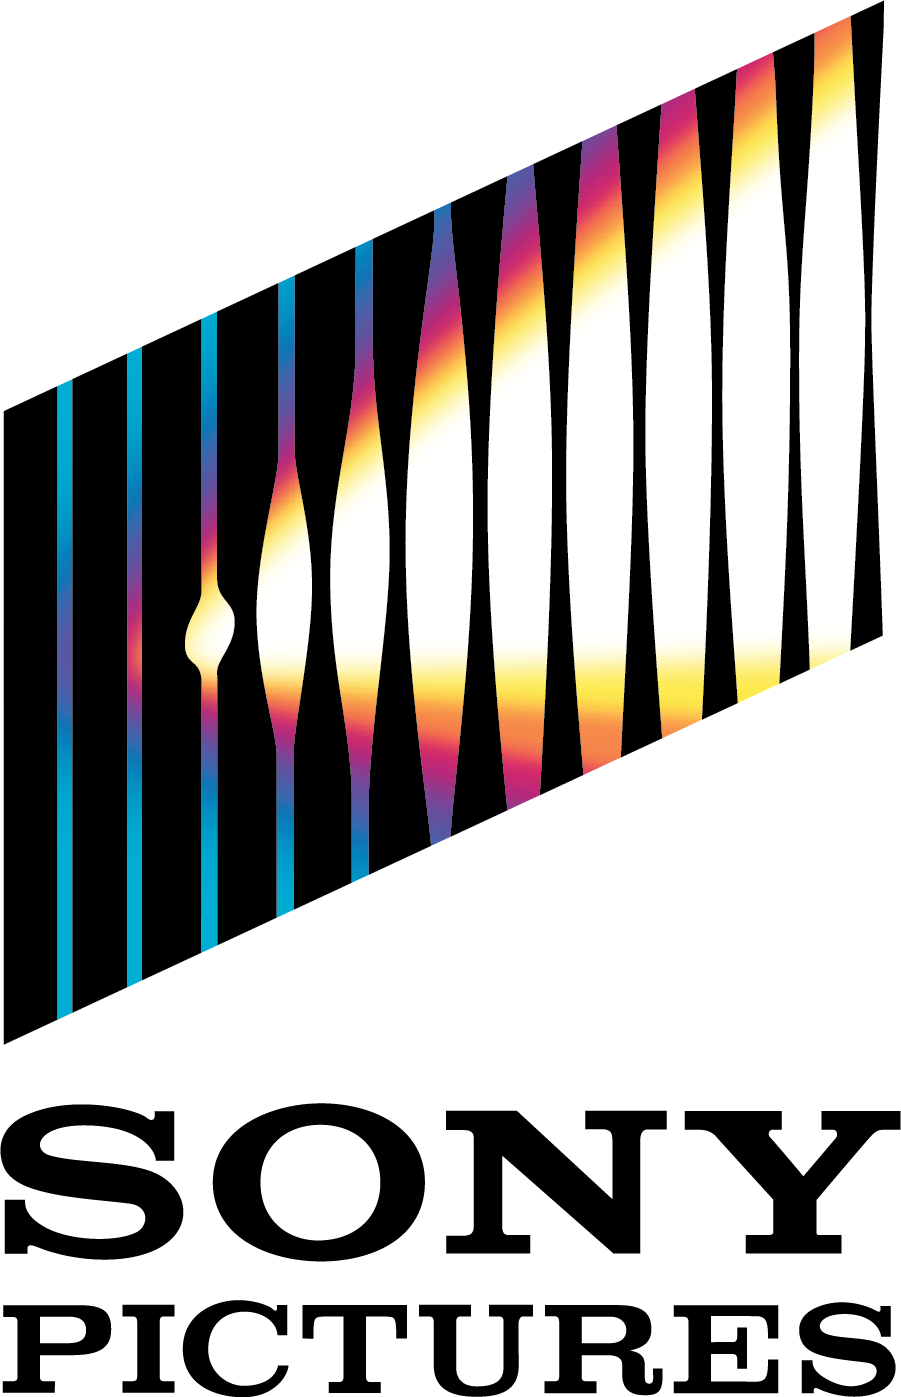 Sony logo cmykcolor.png